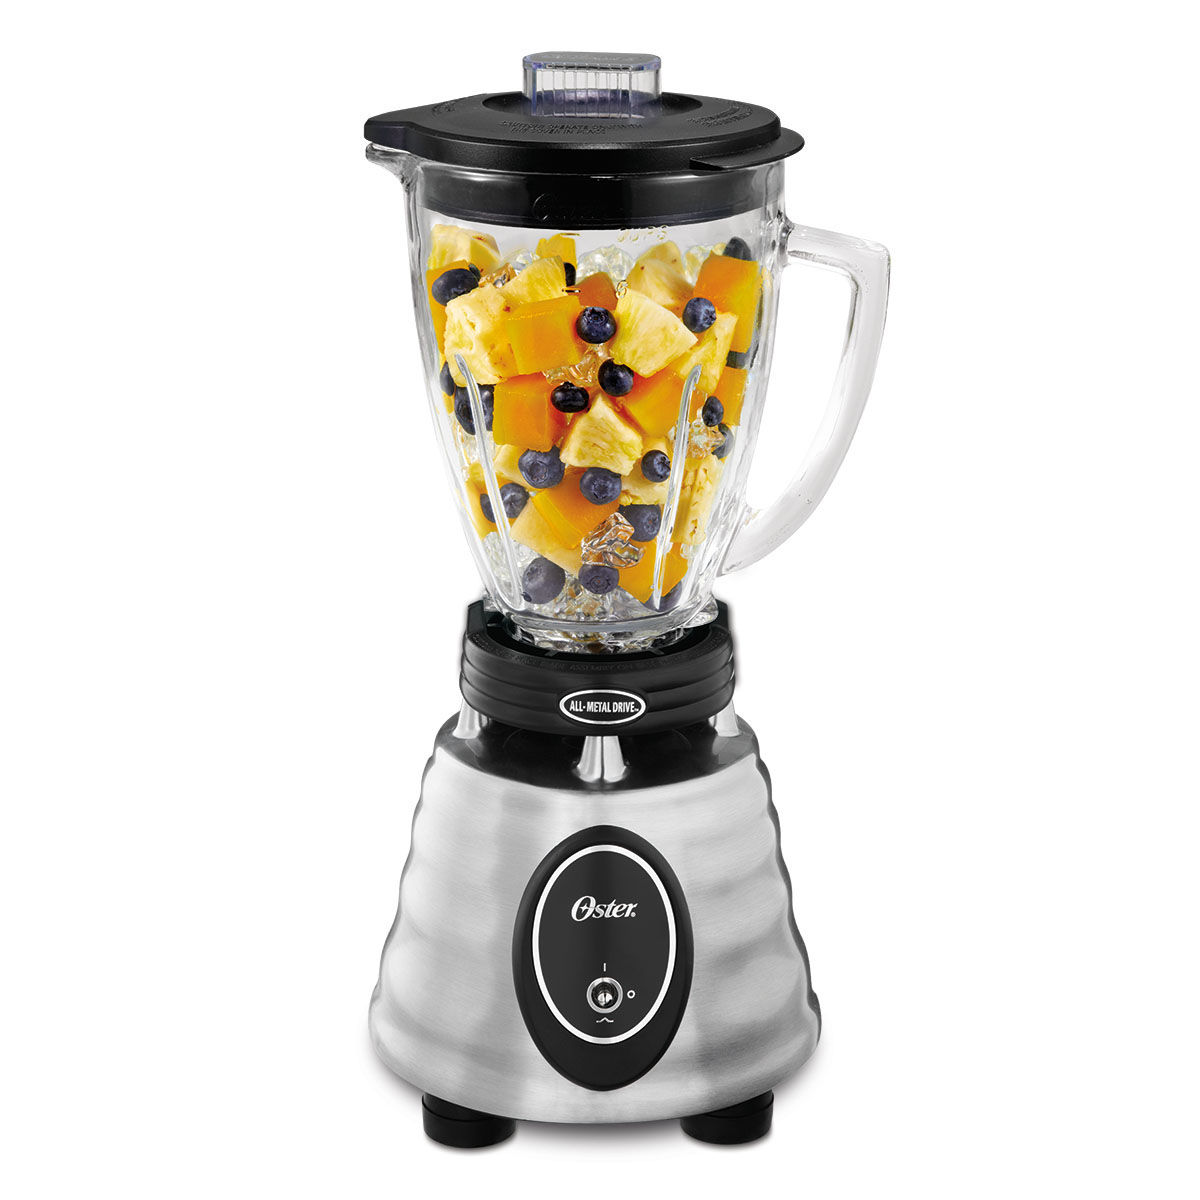 Oster Heritage Blend 400 2-Speed Blender, Stainless Steel (BPCT02-BA0-NP0)